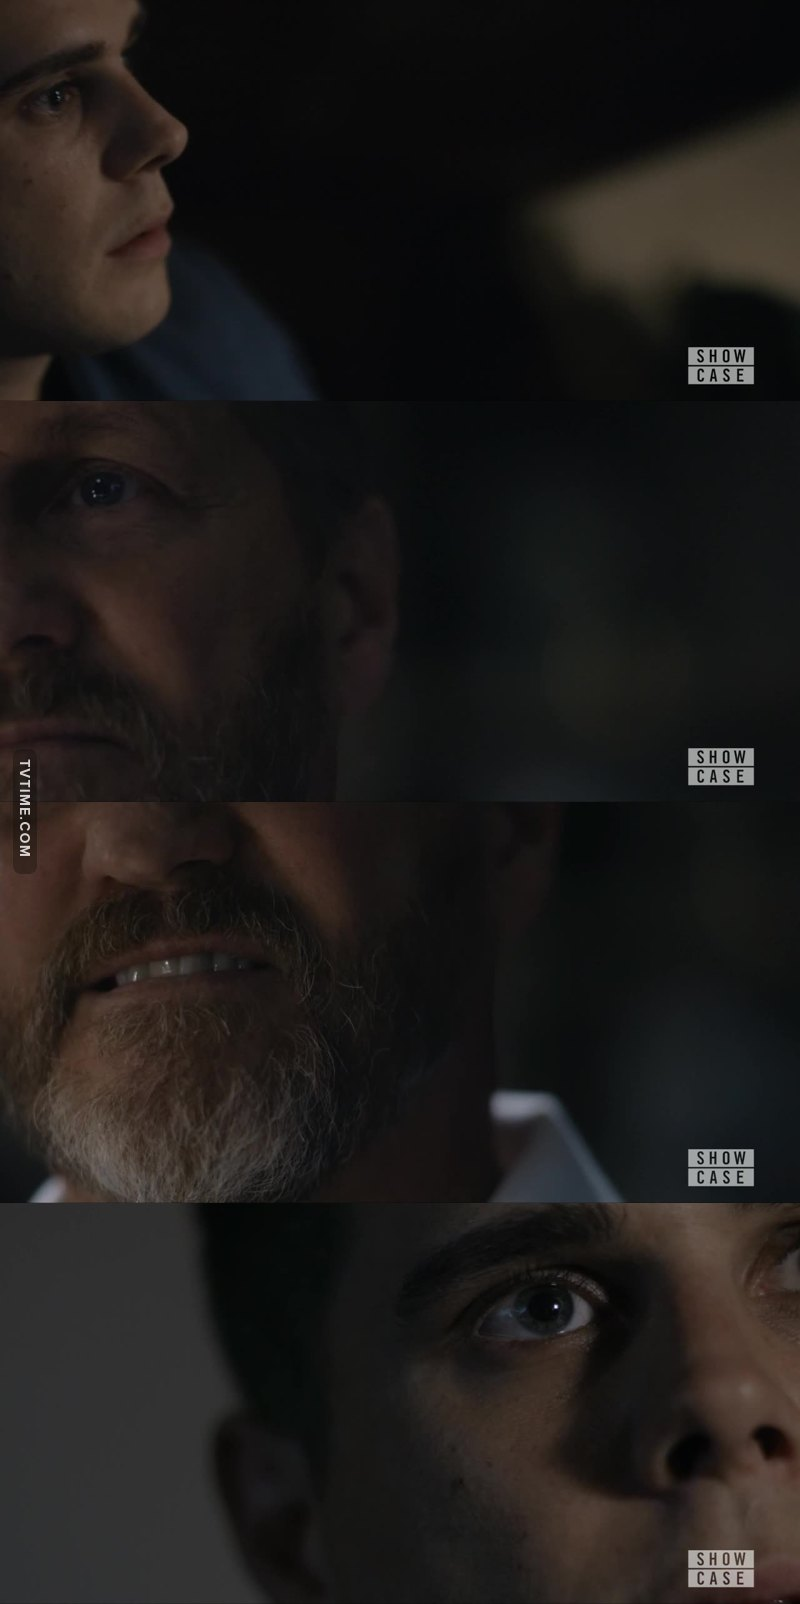 That scene with Trevor and the coach though...wow.